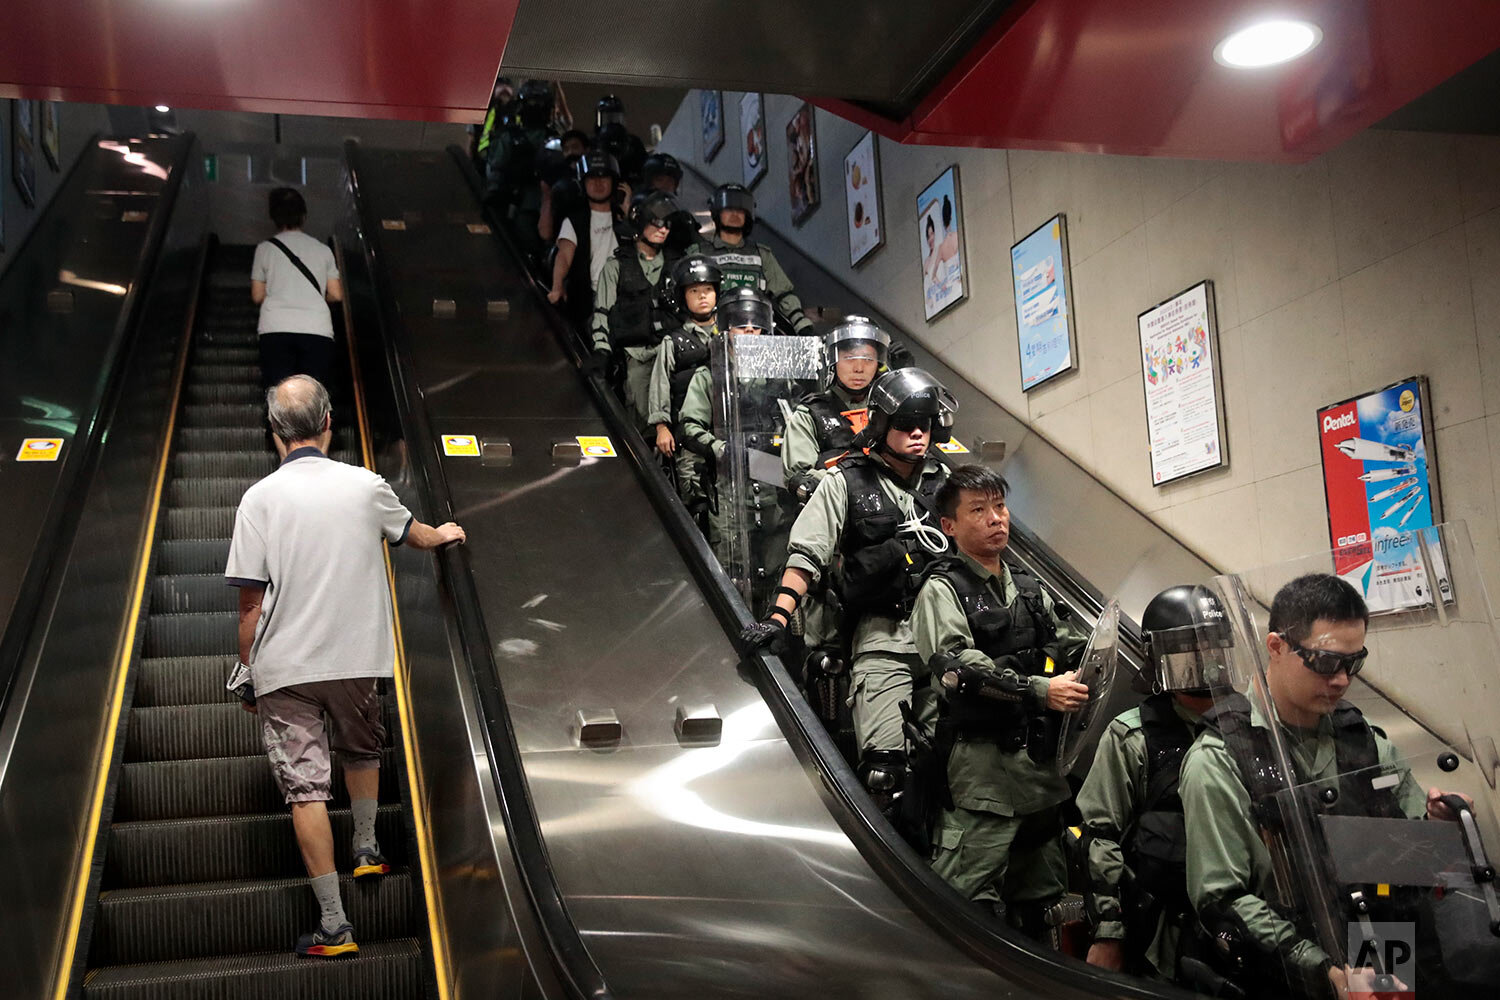 Two commuters ride an escalator at a train station past police officers in riot gear deployed to arrest protesters in Hong Kong, Sept. 2, 2019. (AP Photo/Jae C. Hong)